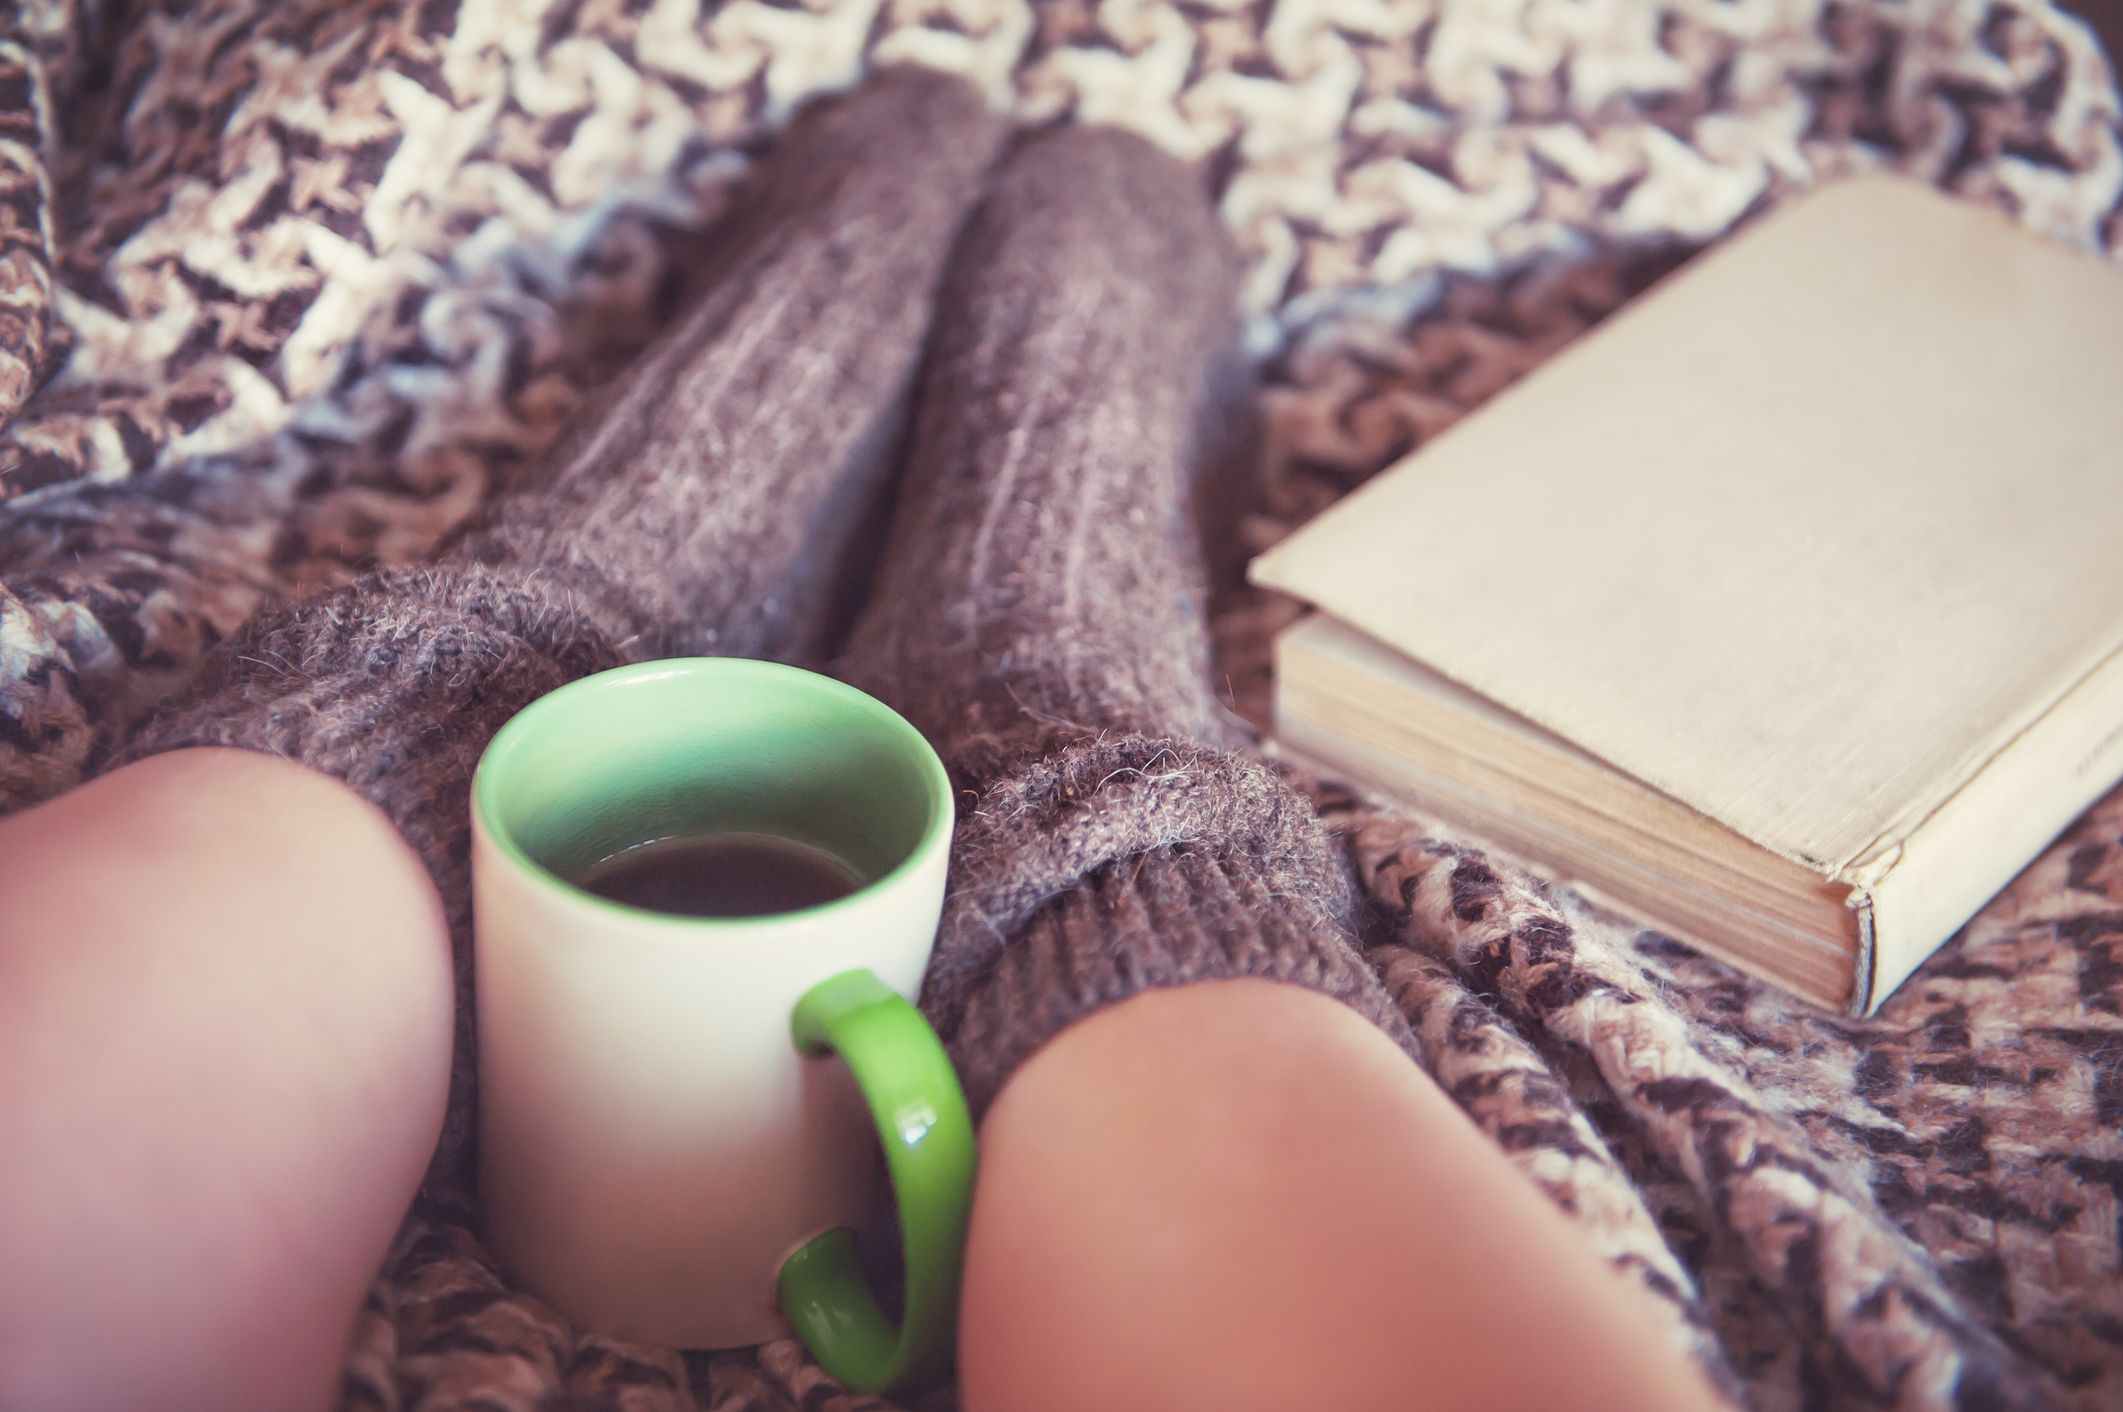 TheBoldAge takes a look at 5 simple steps to help rejuvenate your health in winter